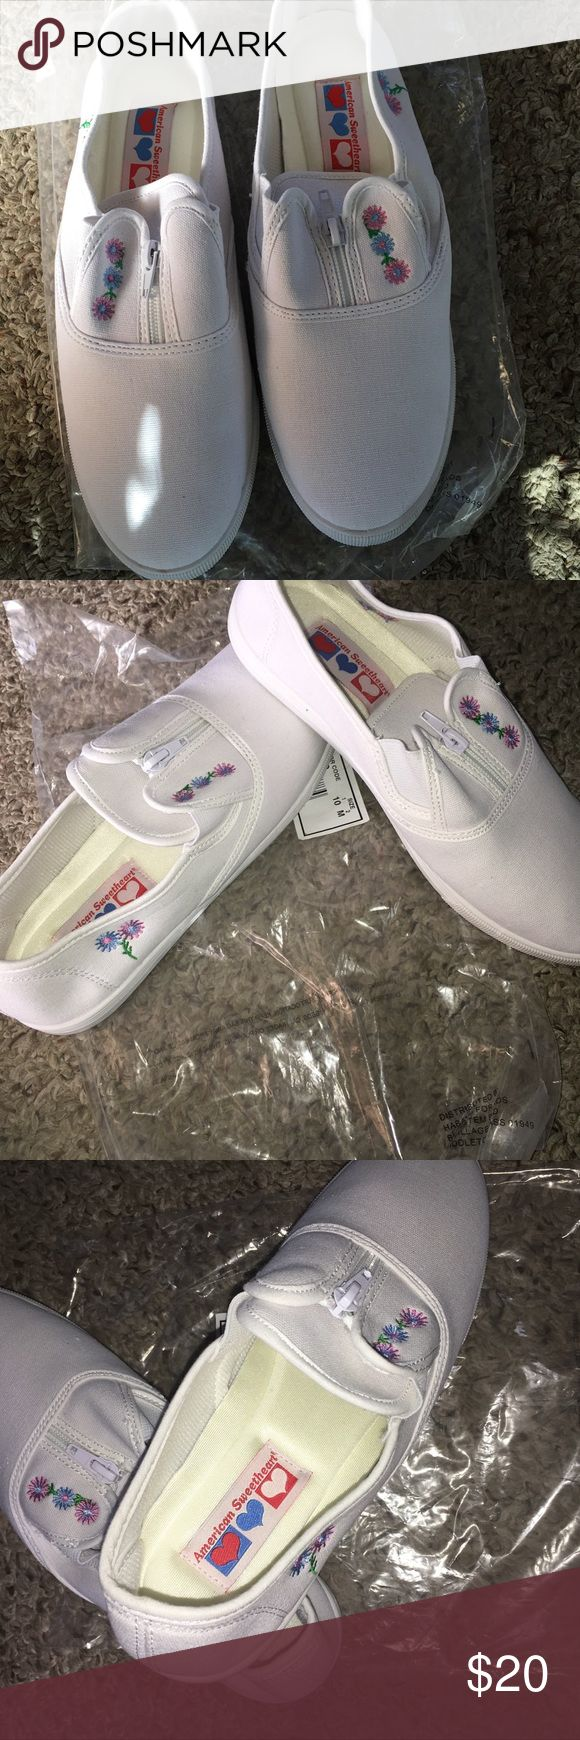 American Sweetheart White Canvas Zip-up Women's white canvas slip-on shoes with zipper front with stretch comfort panels  embroidered cute little blue and pink 🌸 flower 🌺 design.  So cute for summer 2018 💐 💕💋 Size 10m American sweetheart Shoes Sneakers